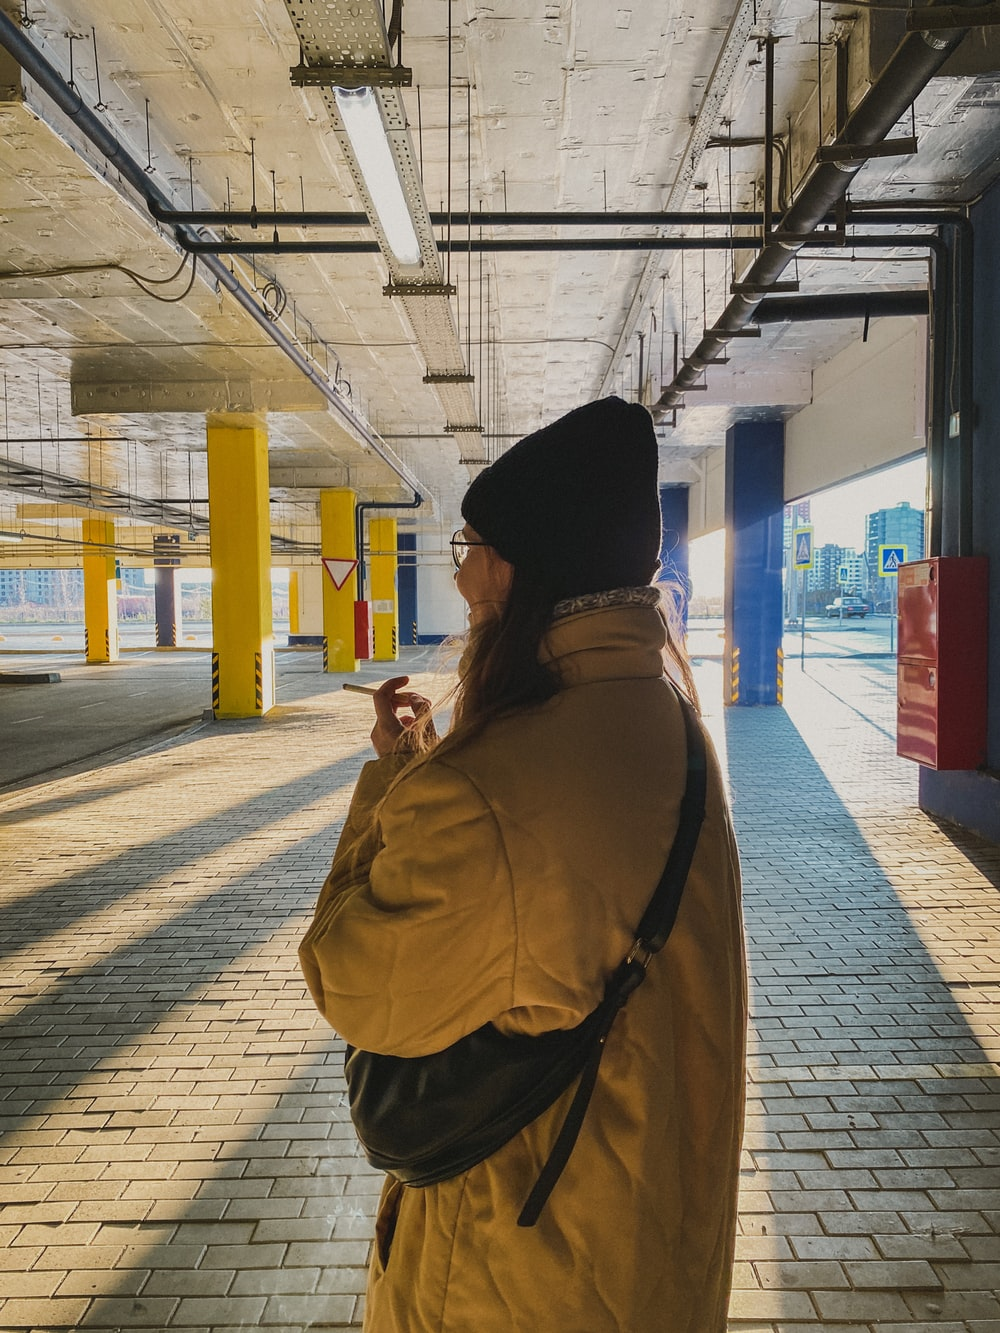 woman in brown coat and black knit cap standing near train station during daytime